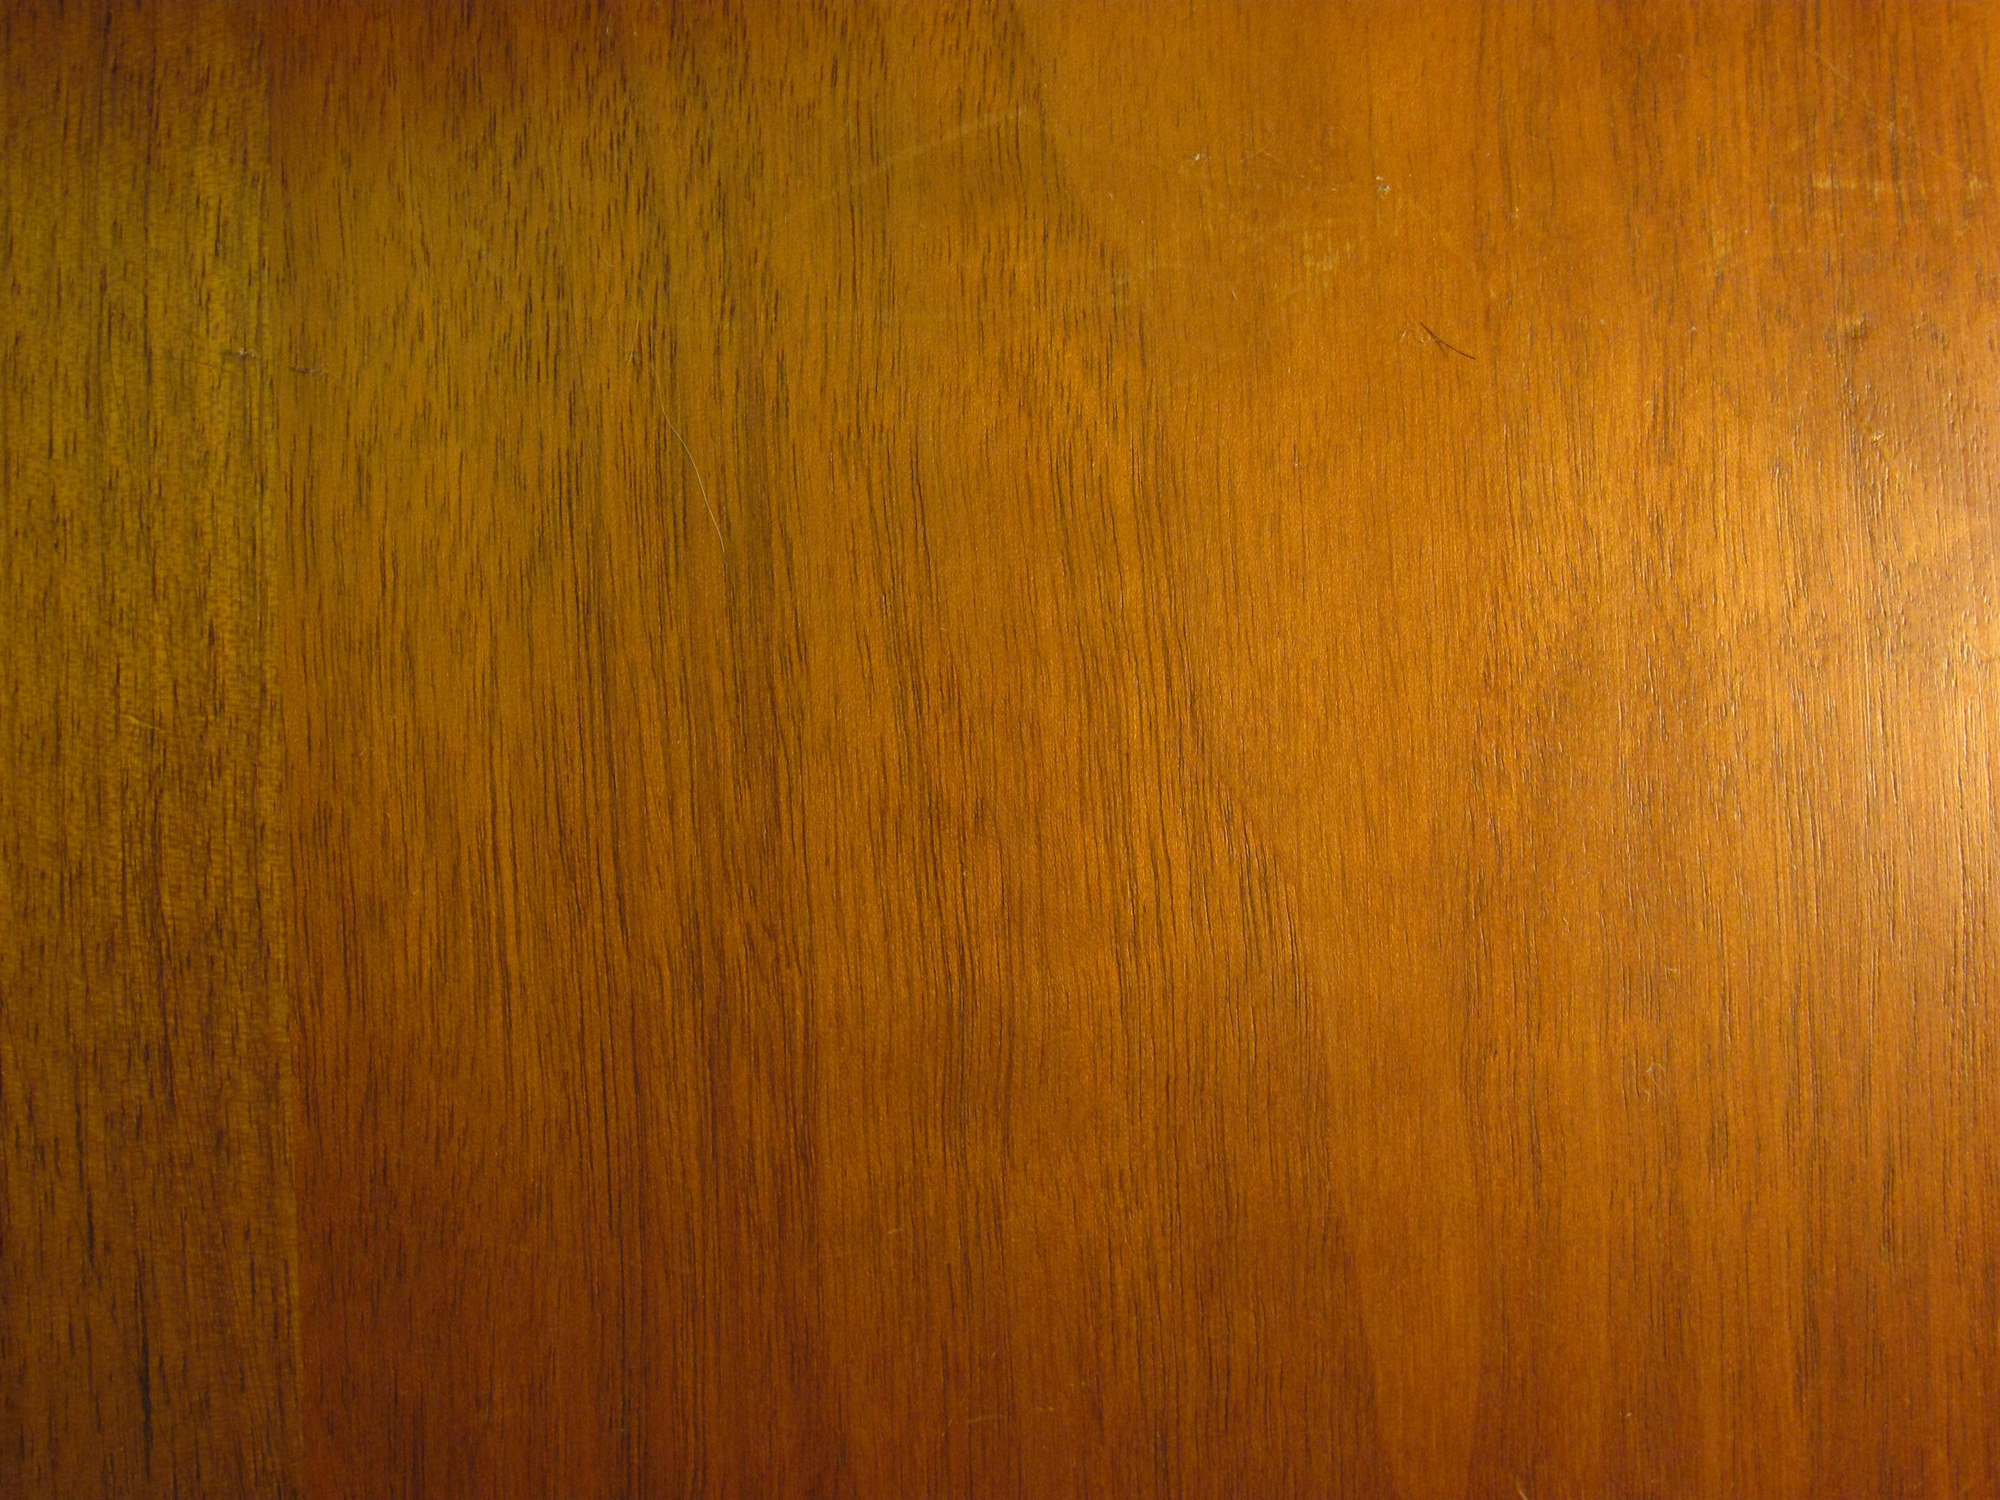 Free photo Wooden Texture  Wooden Wood Texture  Free